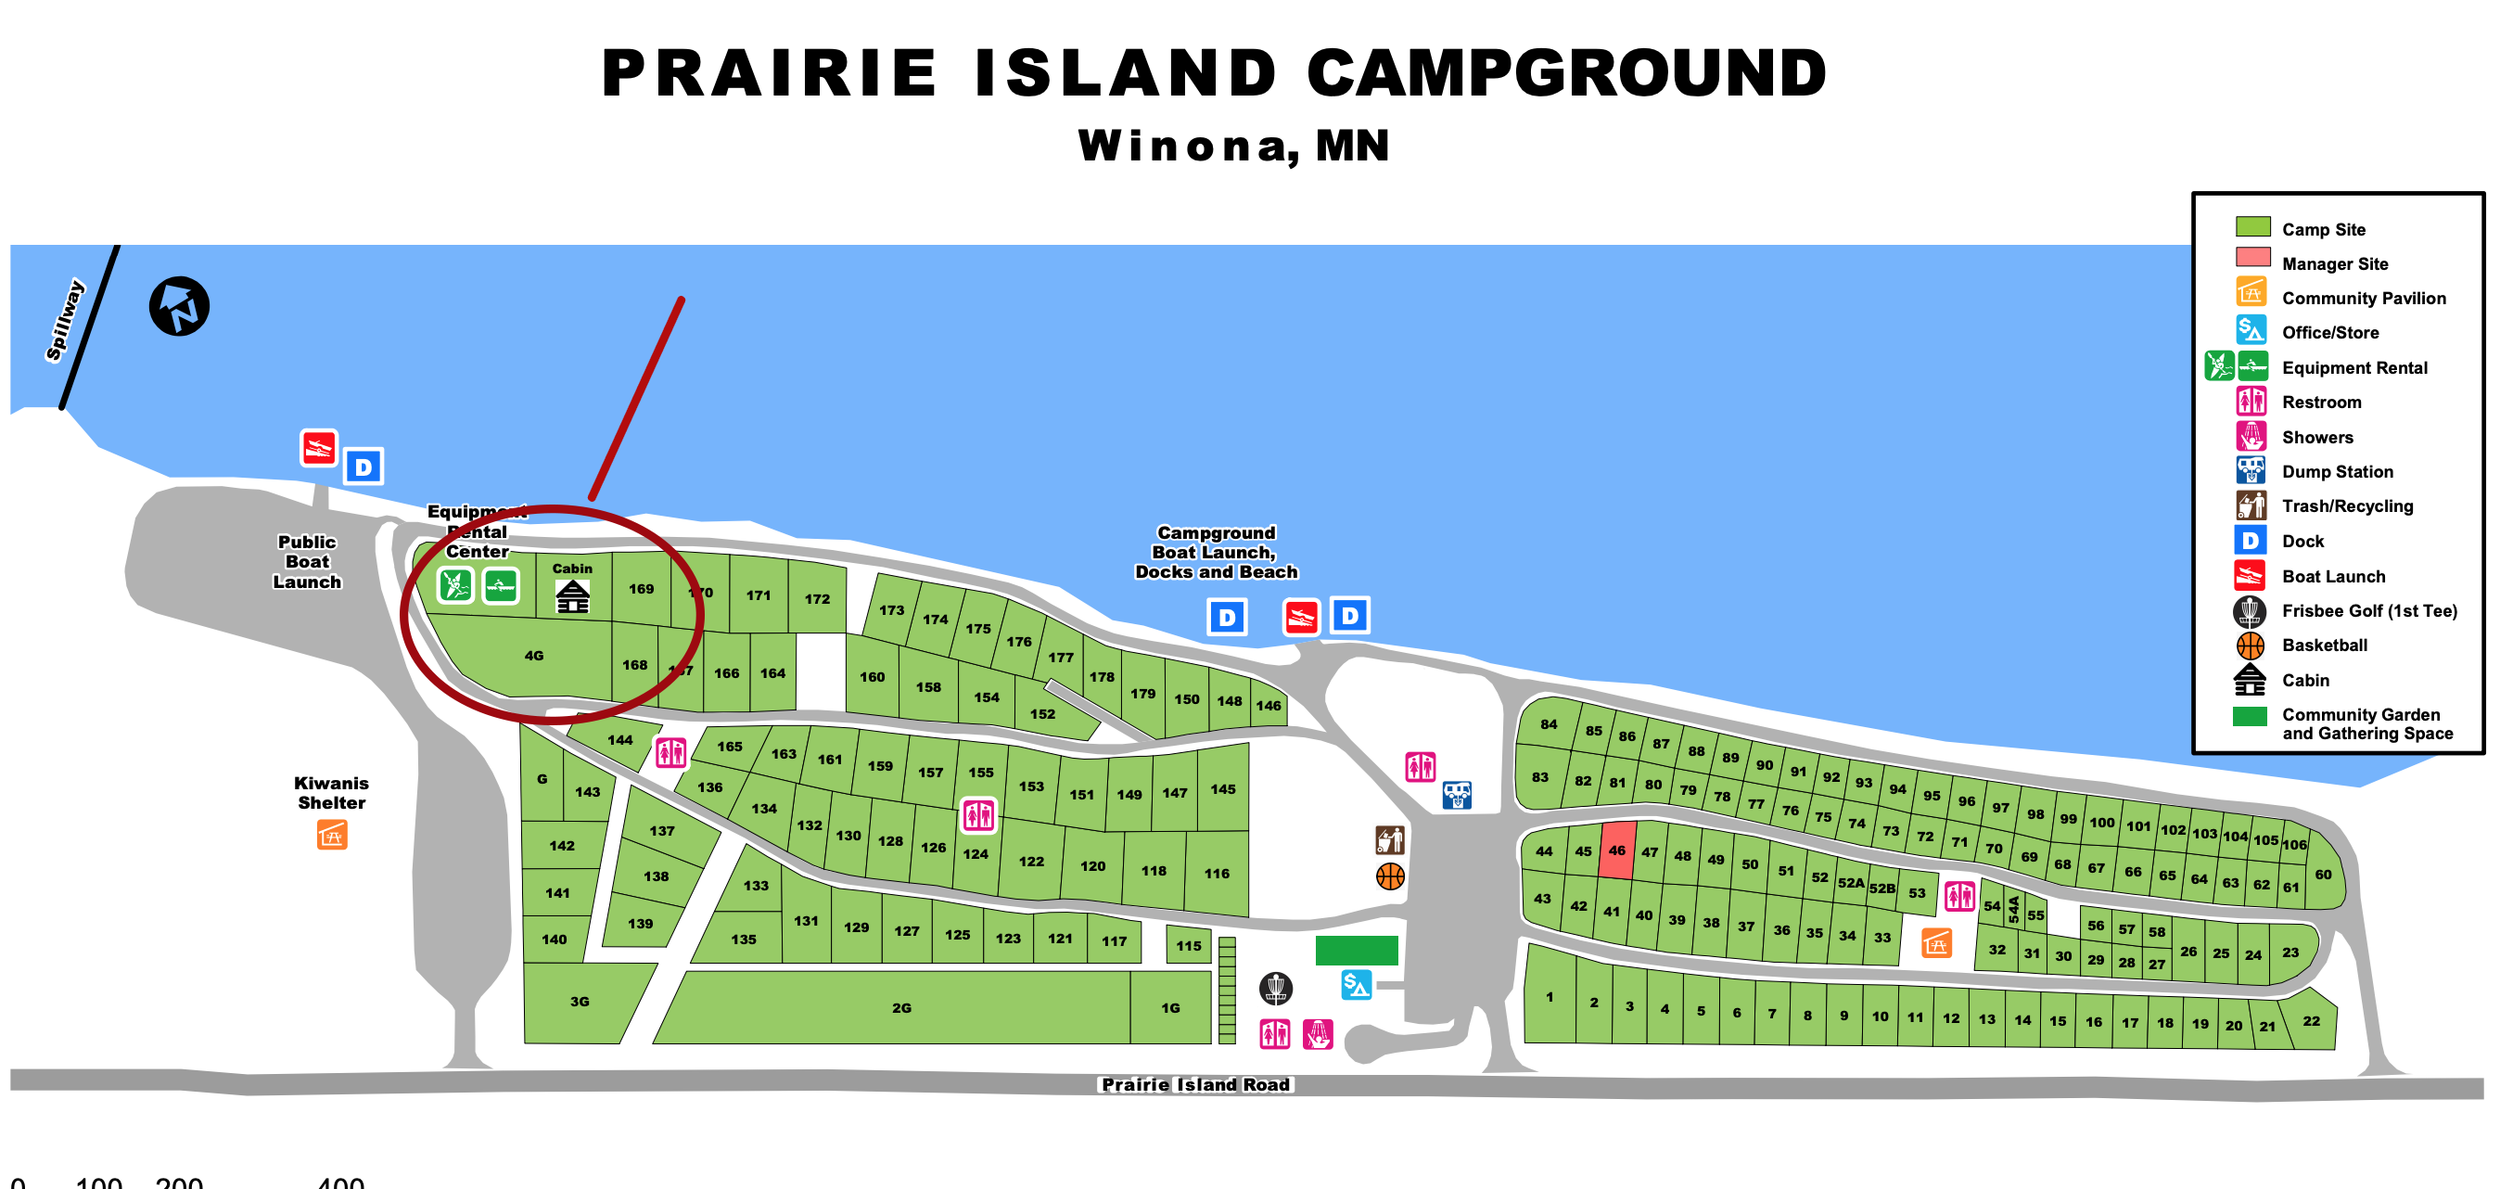 Our spaces are circled. We have Tent Sites 168, 169 and 4G Group Site.  Download Map